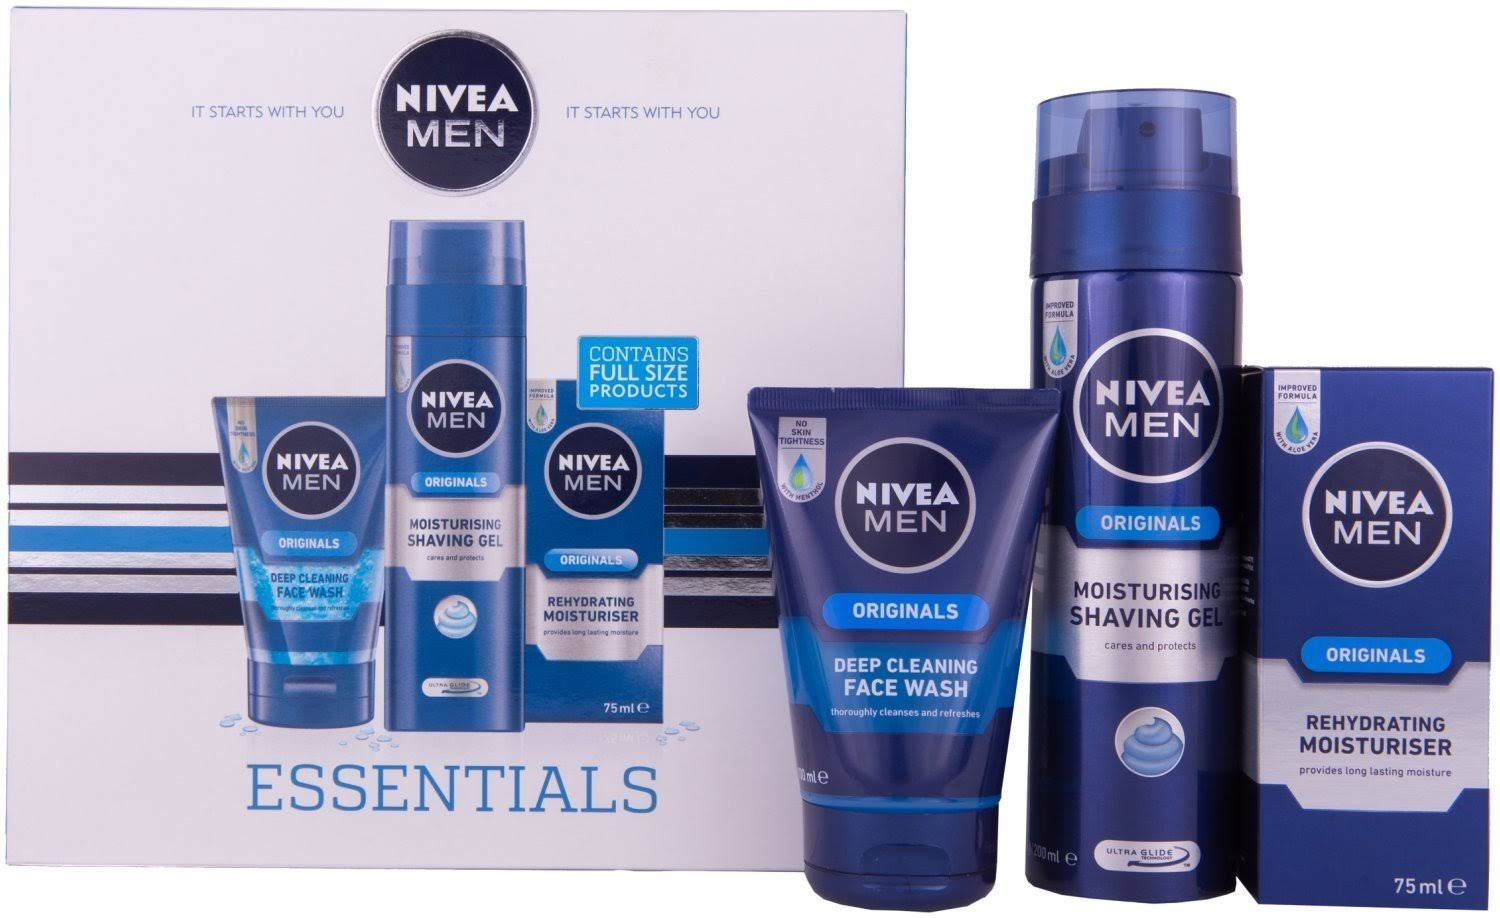 Nivea Men Essentials Gift Set